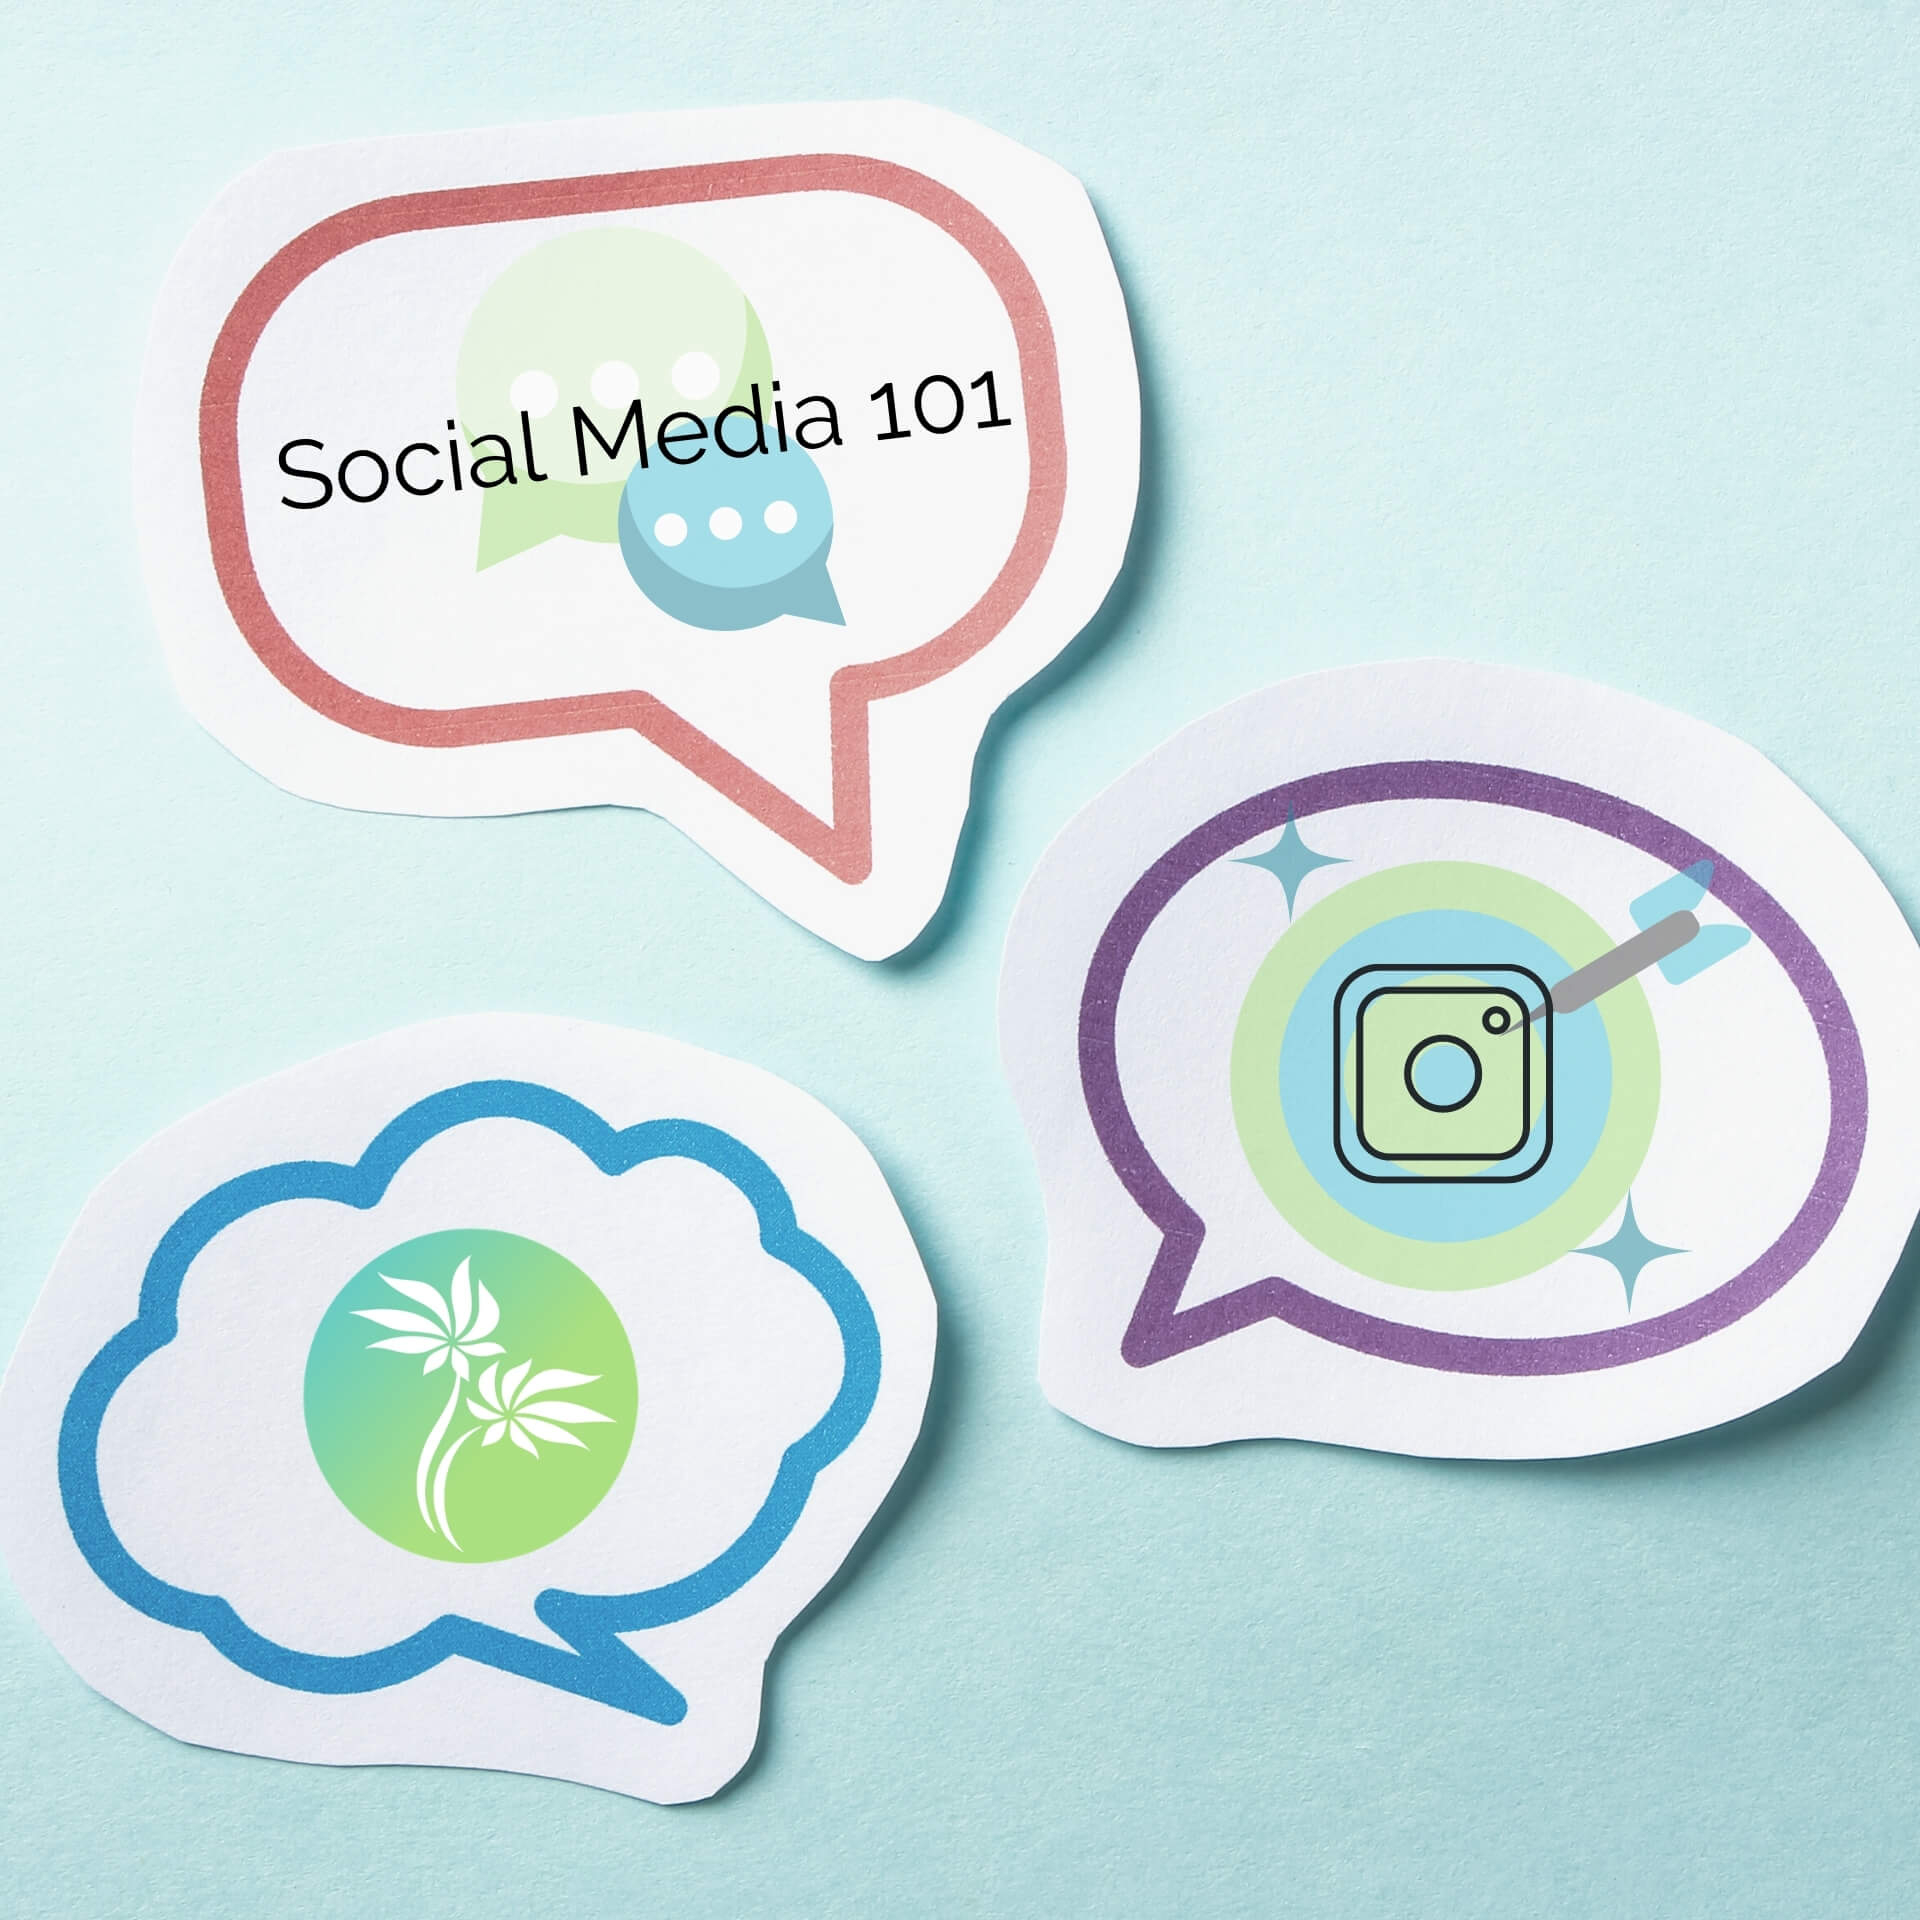 social media target market: speech bubbles with social media icons in them.